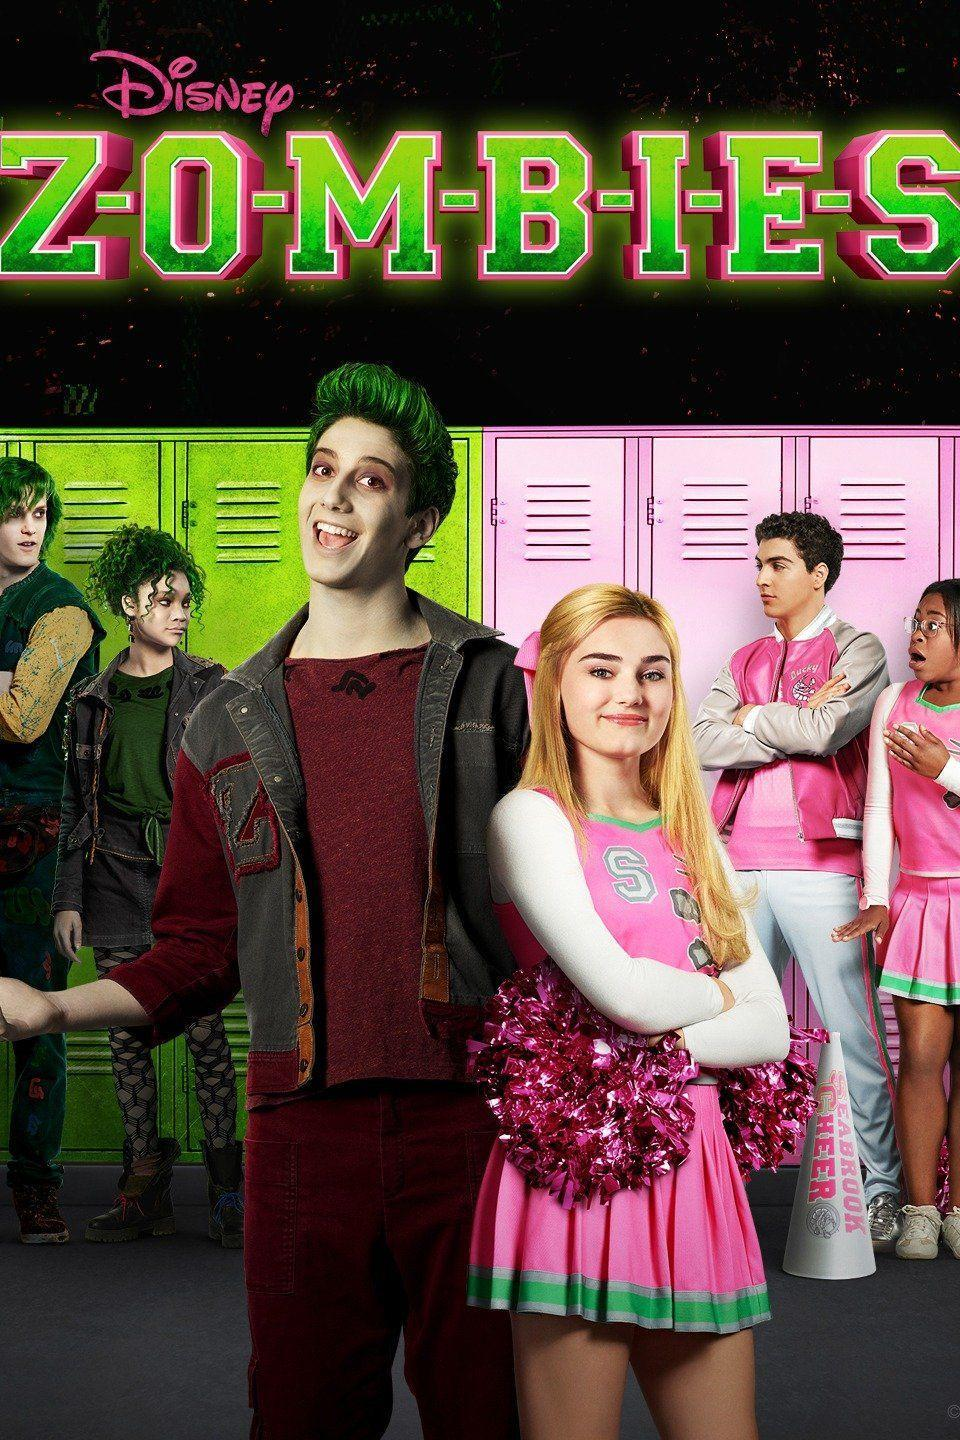 """<p>If you love the <em>High School Musical</em> and <em>Descendants</em> franchises, <em>Zombies</em> is your jam. The age-old tale of outcasts vs. the cool kids gets turned on its head through a catchy soundtrack, epic dance sequences, and a colorful storyline. The costumes are pretty great, too.</p><p><a class=""""link rapid-noclick-resp"""" href=""""https://go.redirectingat.com?id=74968X1596630&url=https%3A%2F%2Fwww.disneyplus.com%2Fmovies%2Fz-o-m-b-i-e-s%2F6kjGy4OR1In6&sref=https%3A%2F%2Fwww.countryliving.com%2Flife%2Fentertainment%2Fg32748070%2Fdisney-plus-halloween-movies%2F"""" rel=""""nofollow noopener"""" target=""""_blank"""" data-ylk=""""slk:WATCH NOW"""">WATCH NOW</a></p>"""